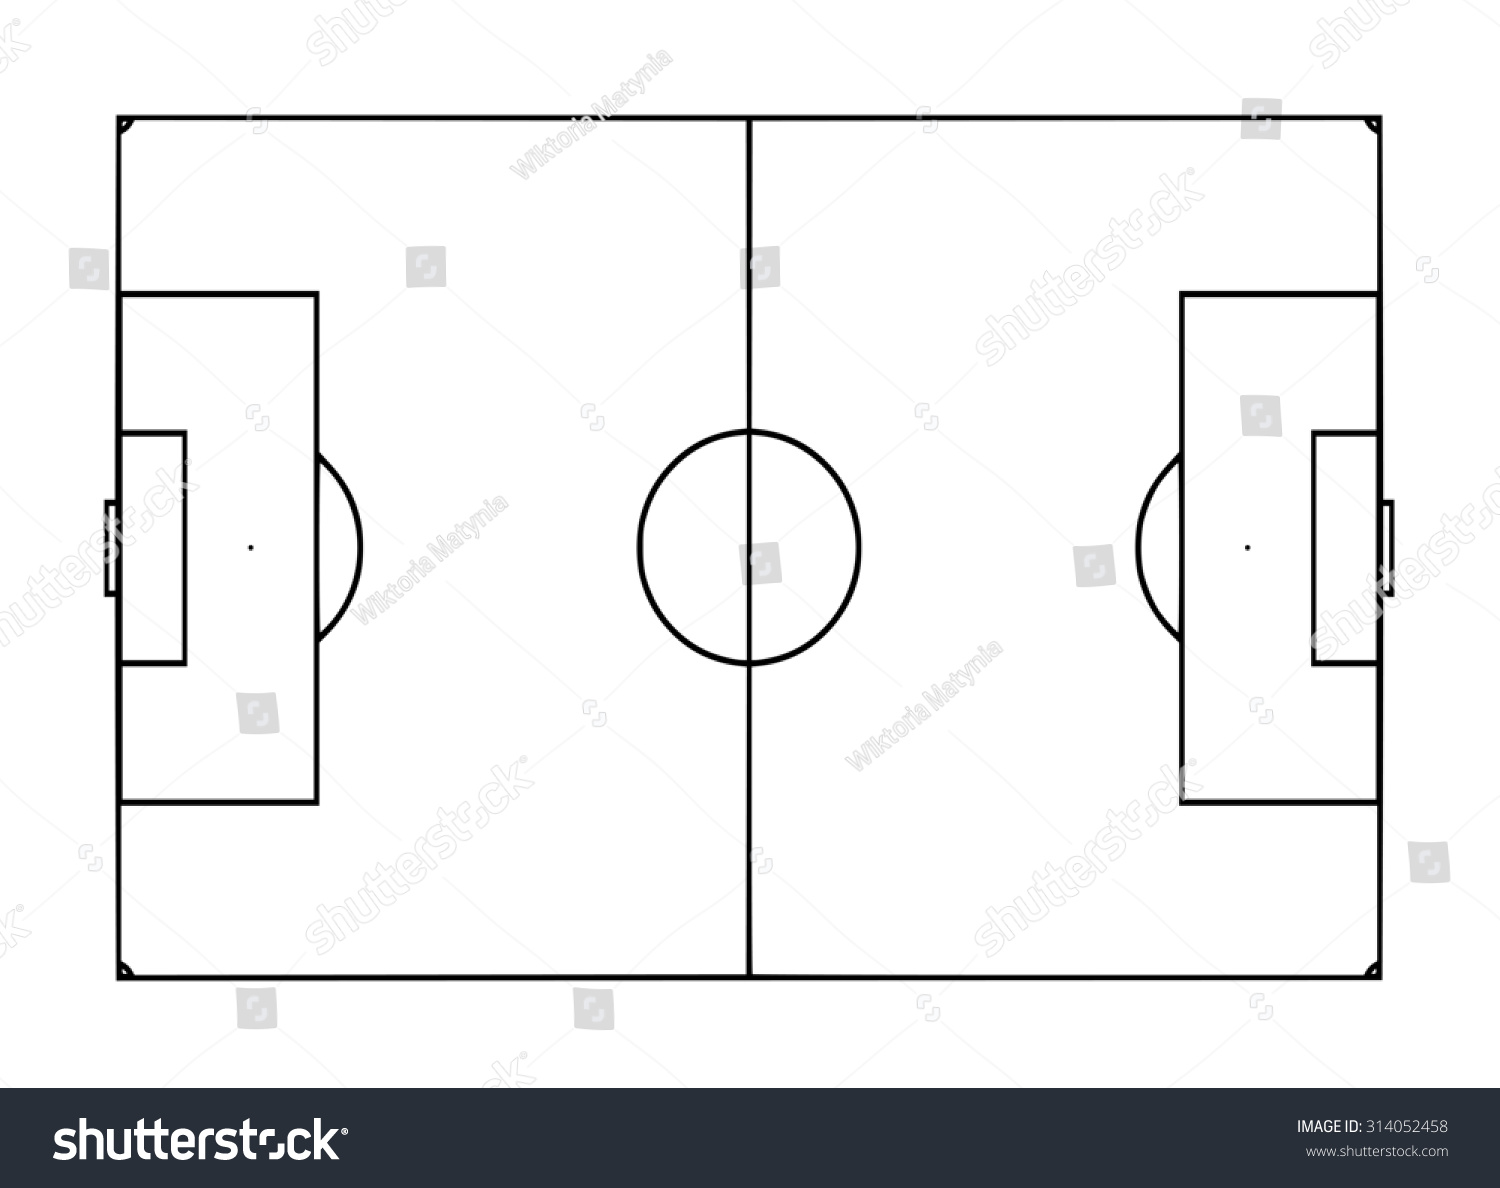 Royalty Free Stock Illustration Of Football Pitch Template Stock